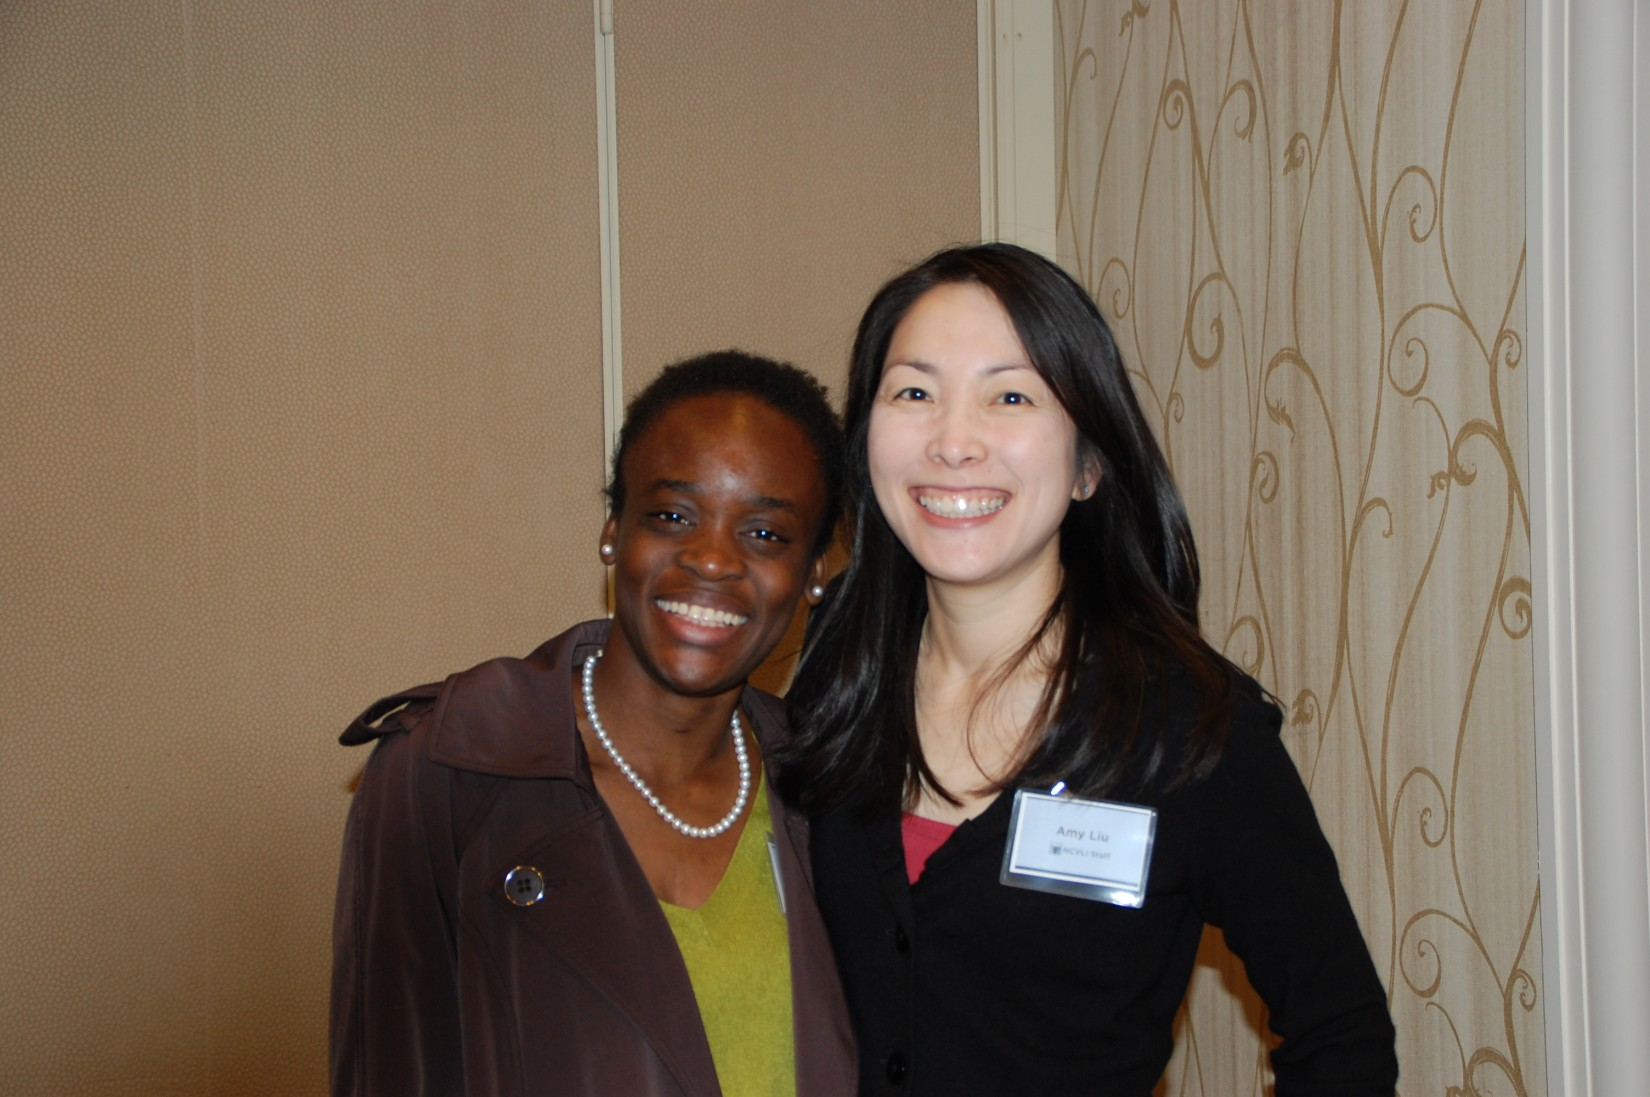 NCVLI staff members Fumi Owoso and Amy Liu.